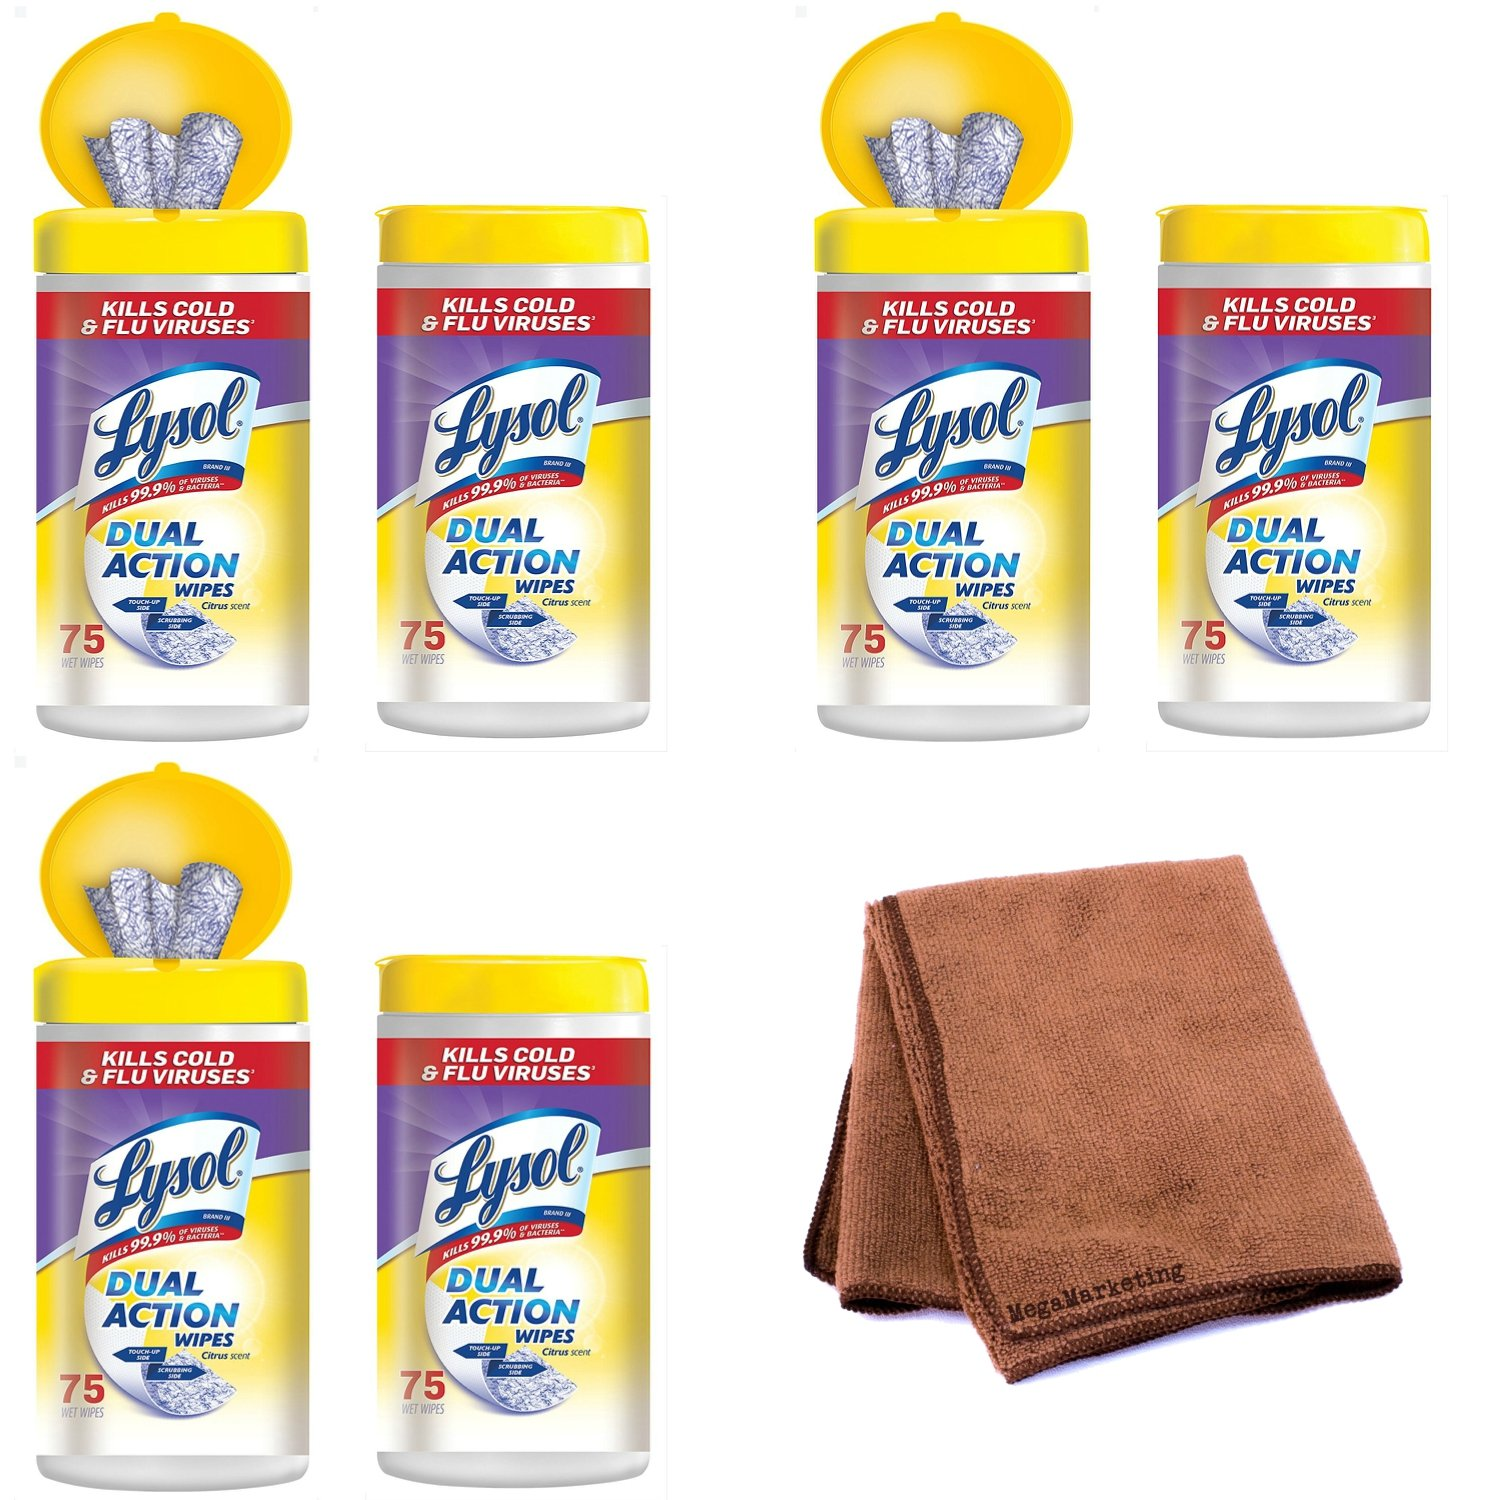 Lysol Dual Action Disinfecting Wipes w. Scrubbing Texture, 6-Pack, (450 Total Count) with Cleaning Cloth